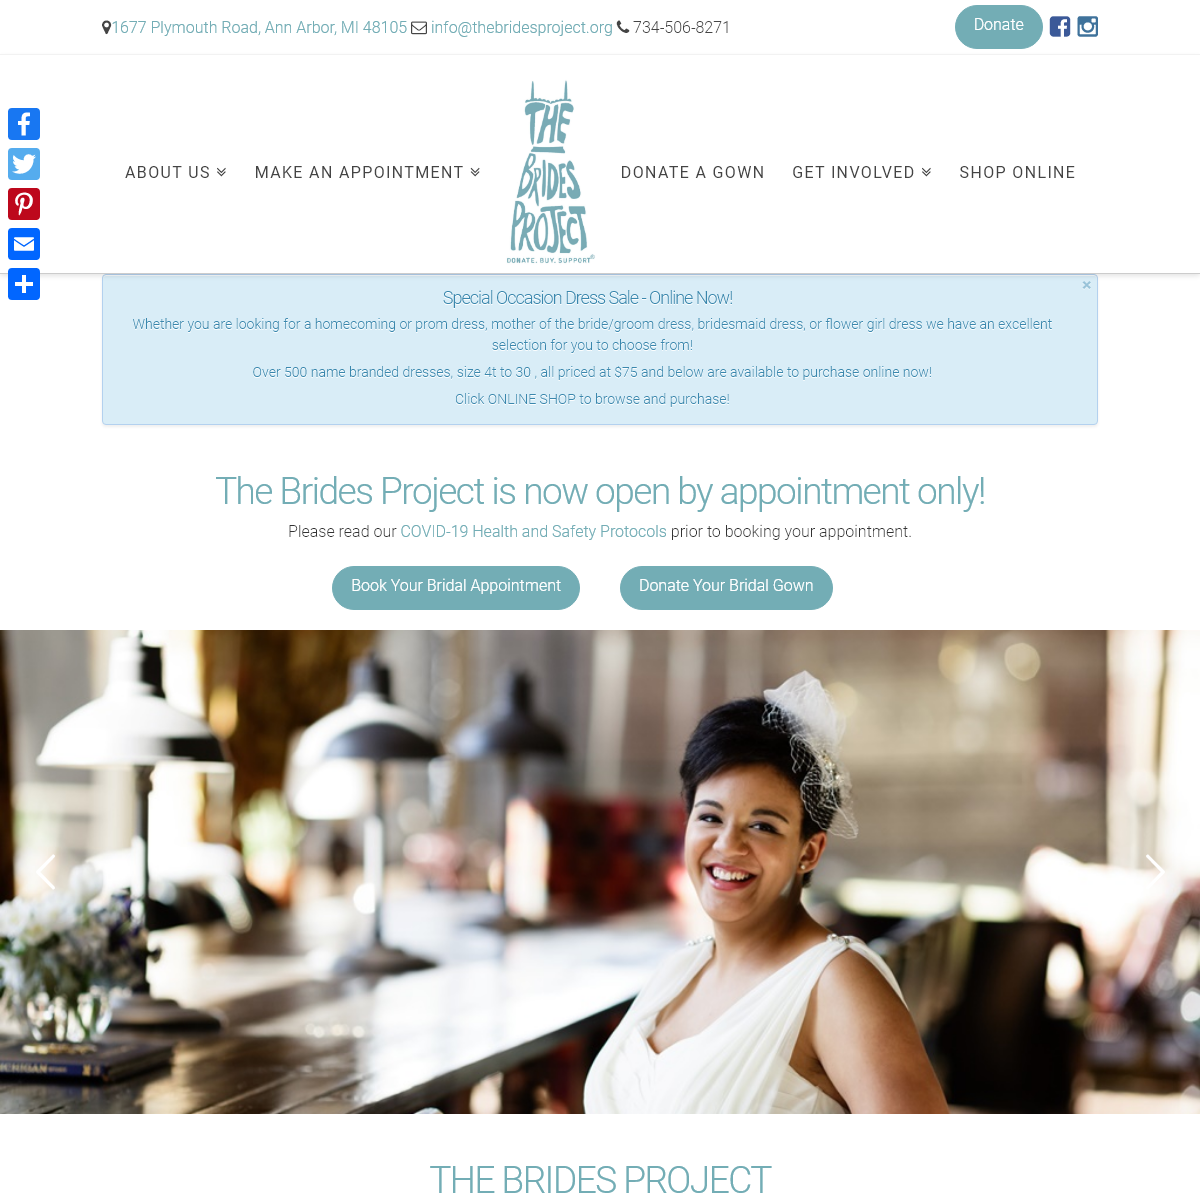 The Brides Project - Donate. Buy. Support.